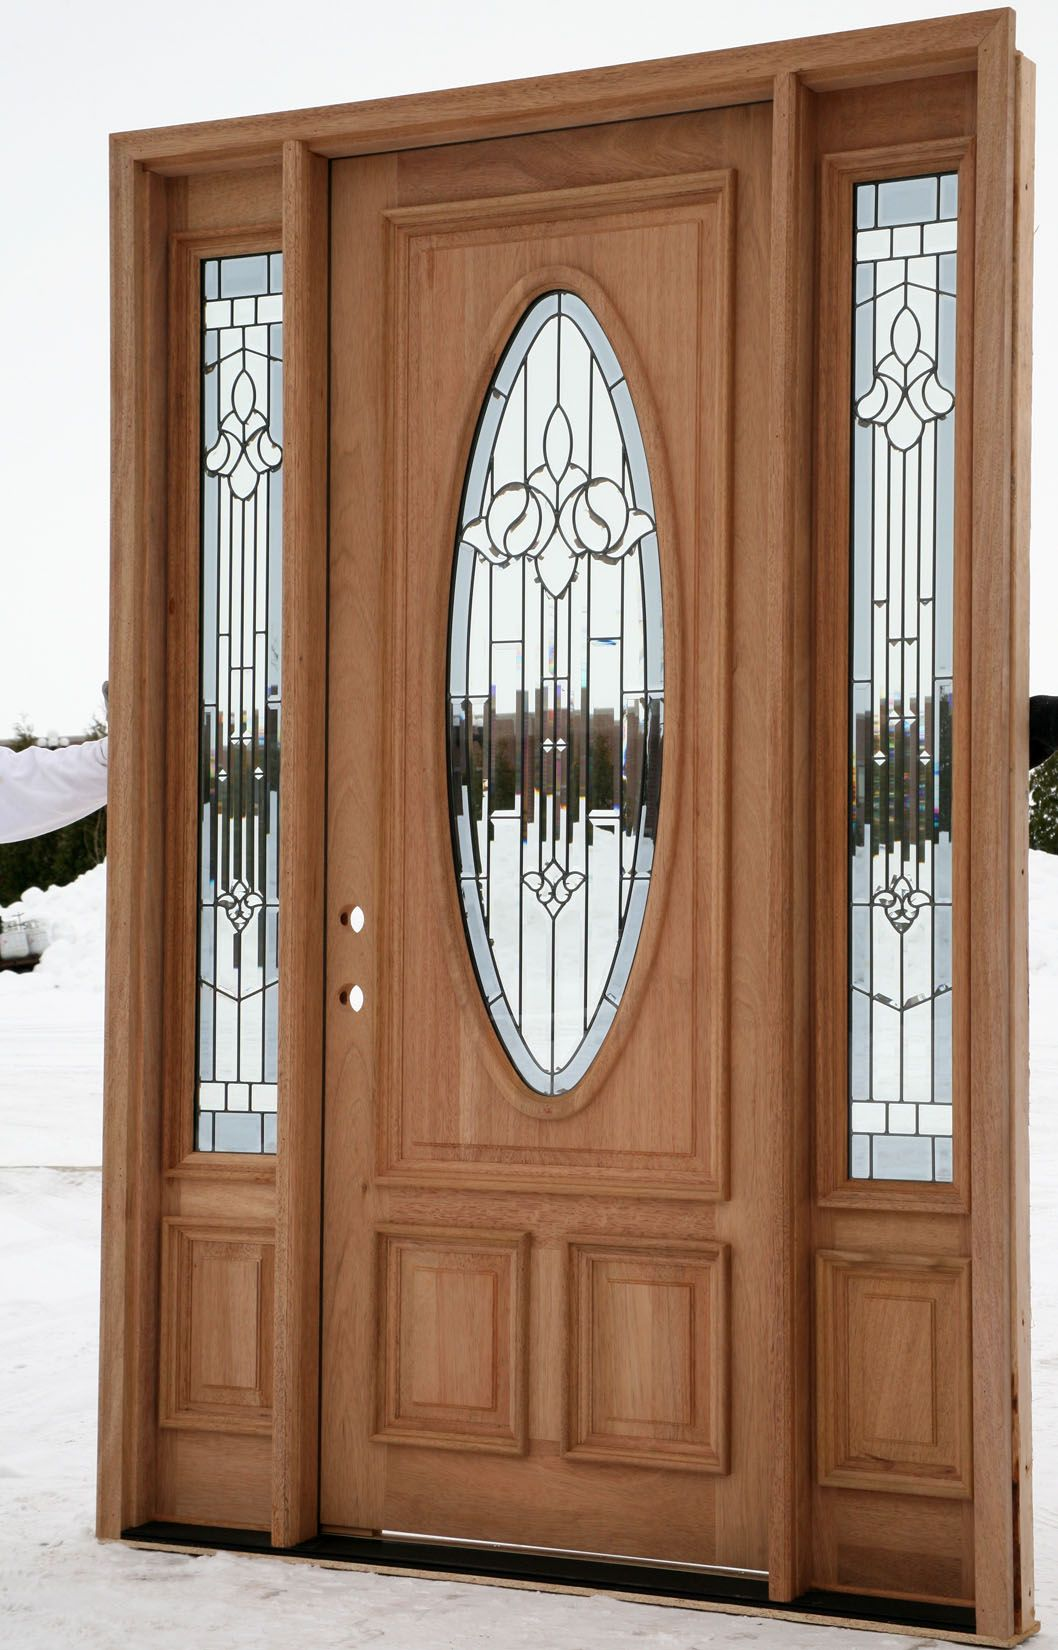 Exterior entry doors with sidelights house ideas for Entry doors with sidelights